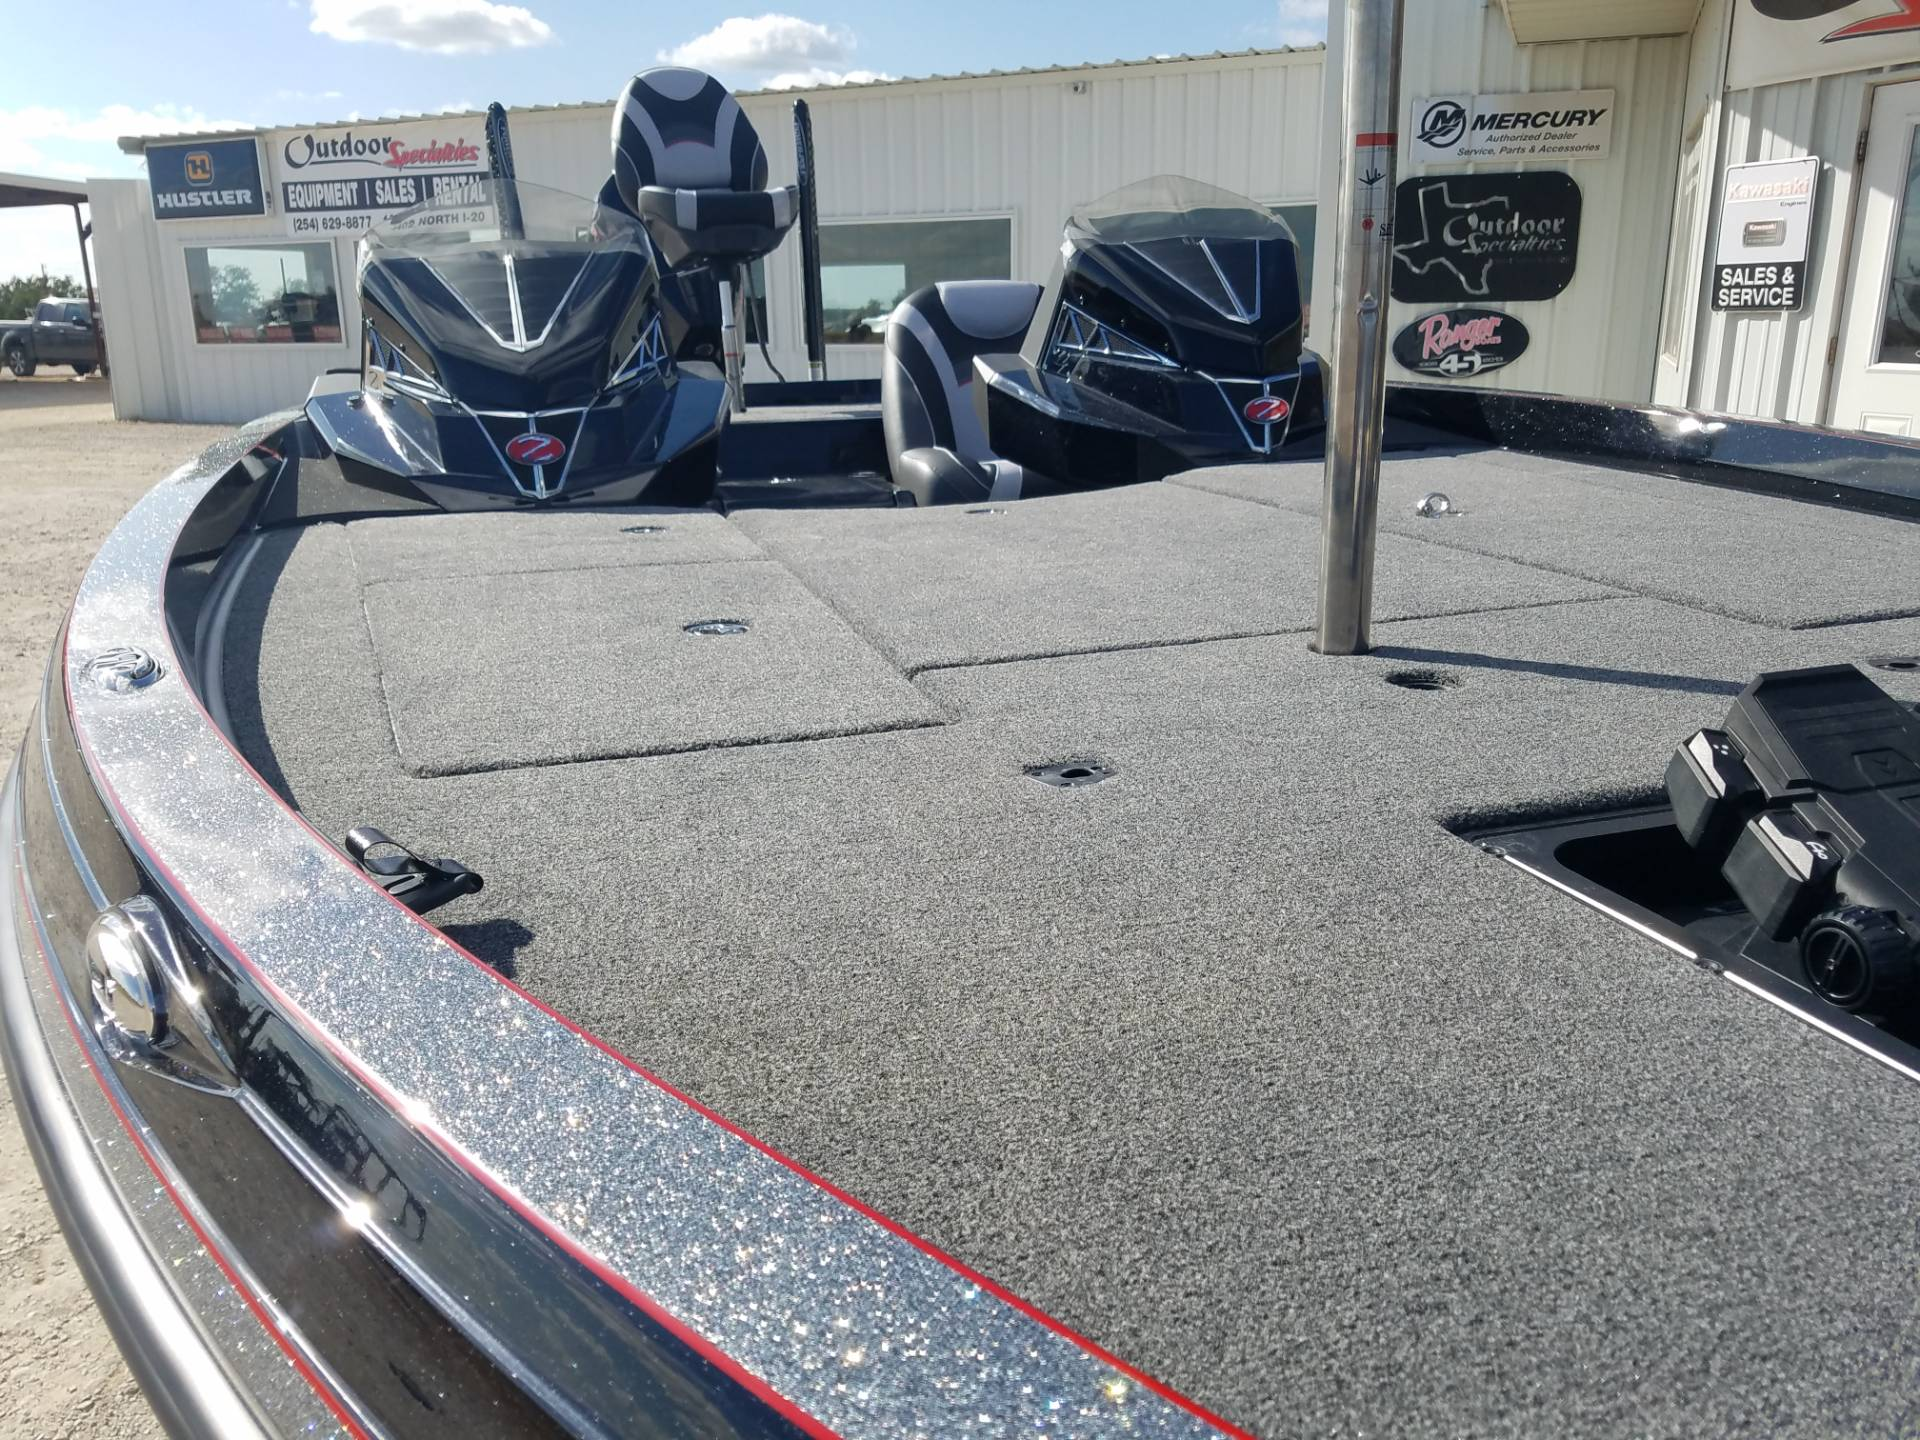 2021 Ranger Z520L Touring Package w/ Dual Pro Charger in Eastland, Texas - Photo 12